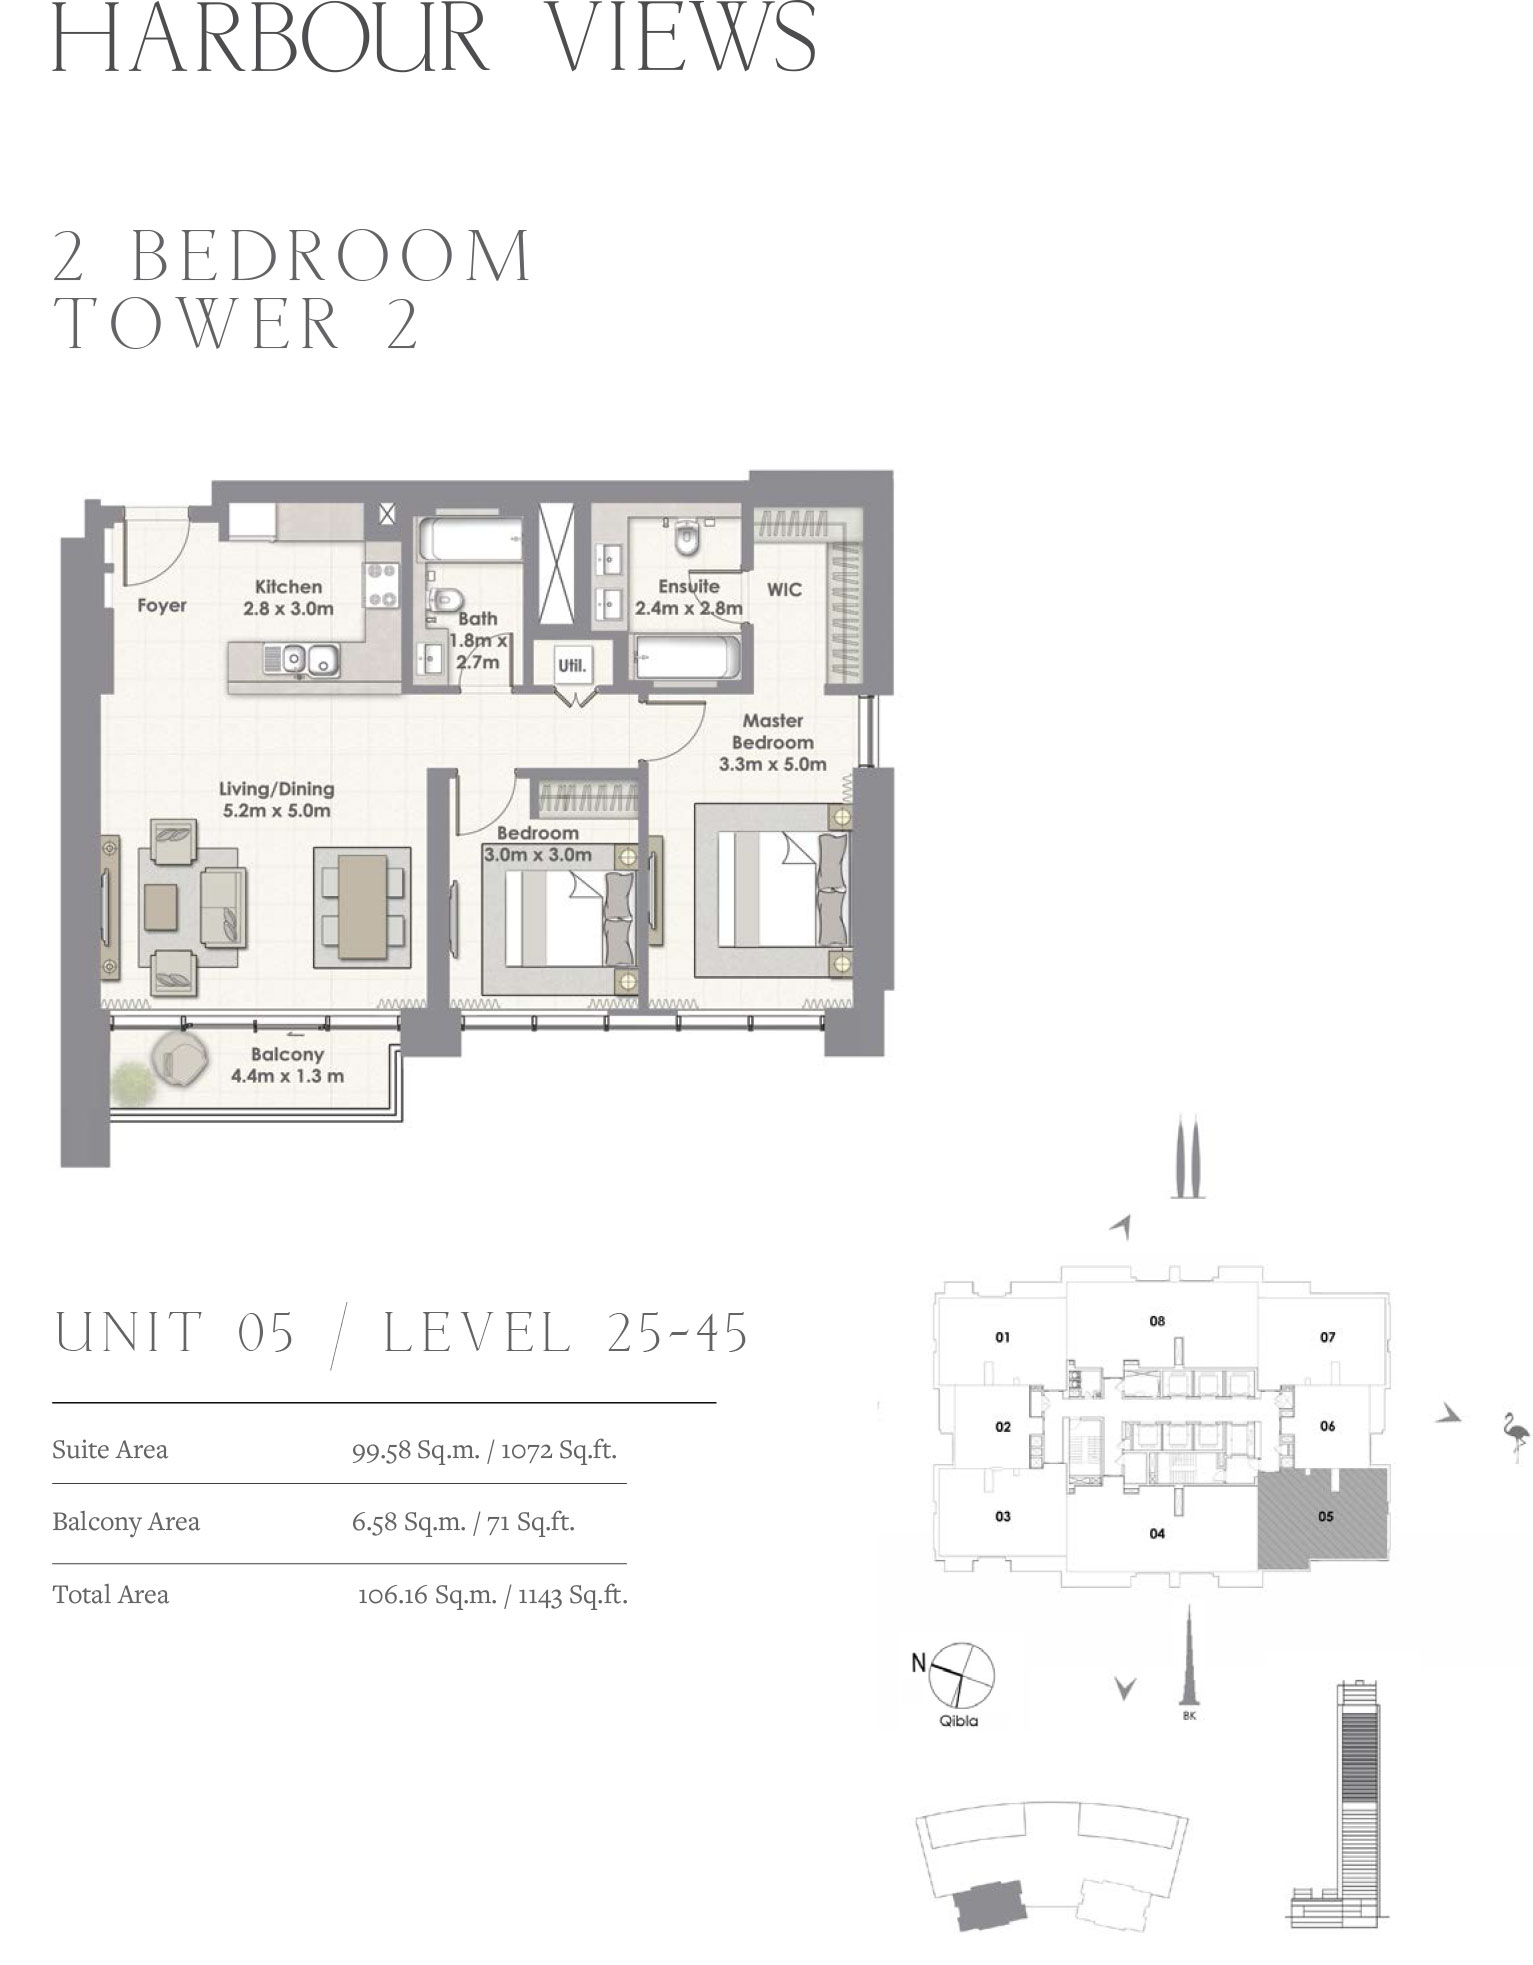 2 Bedroom Tower 2, Unit 05/Level 25-45